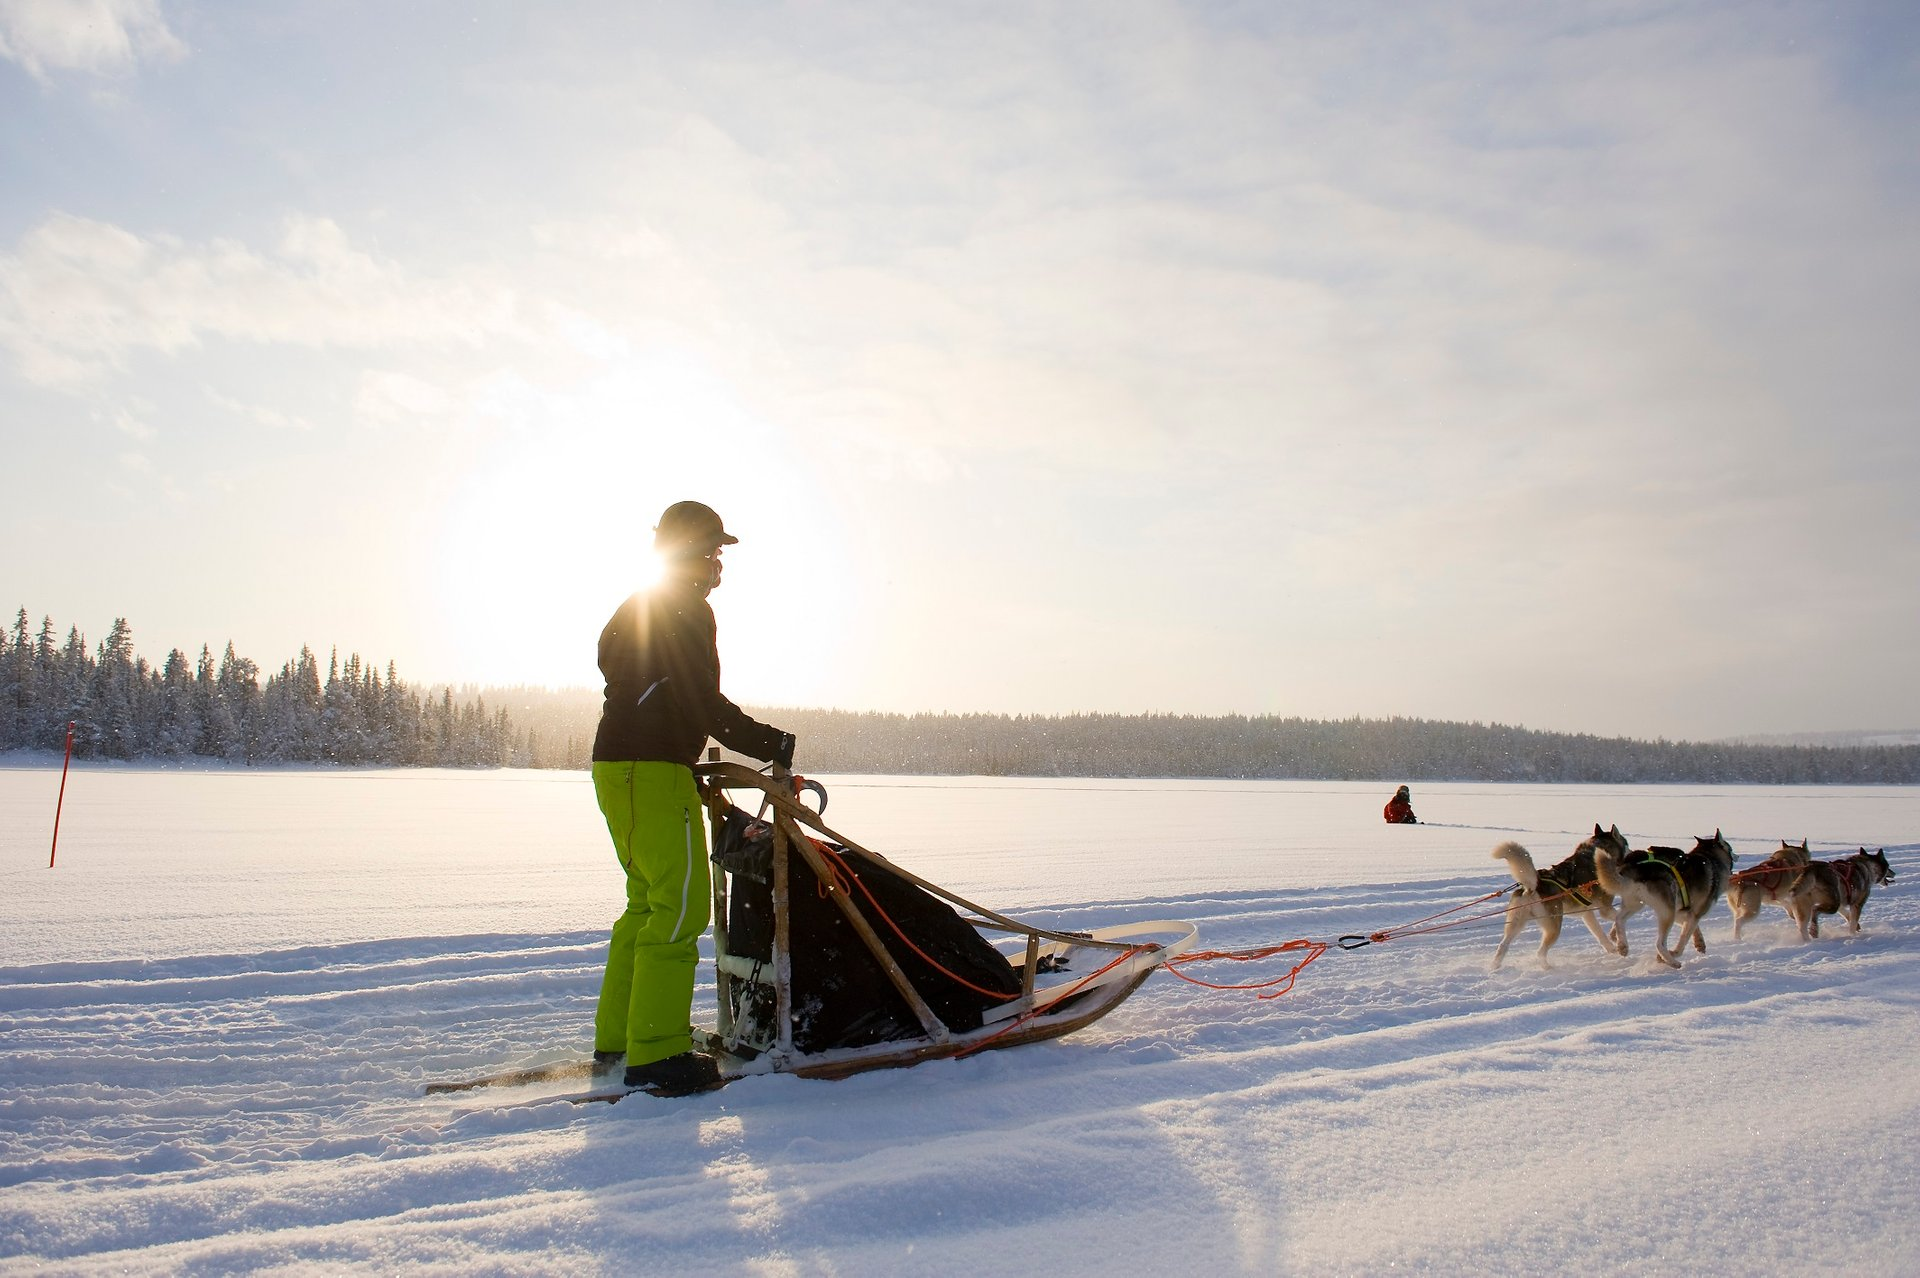 Dog Sledding in Finland 2020 - Best Time